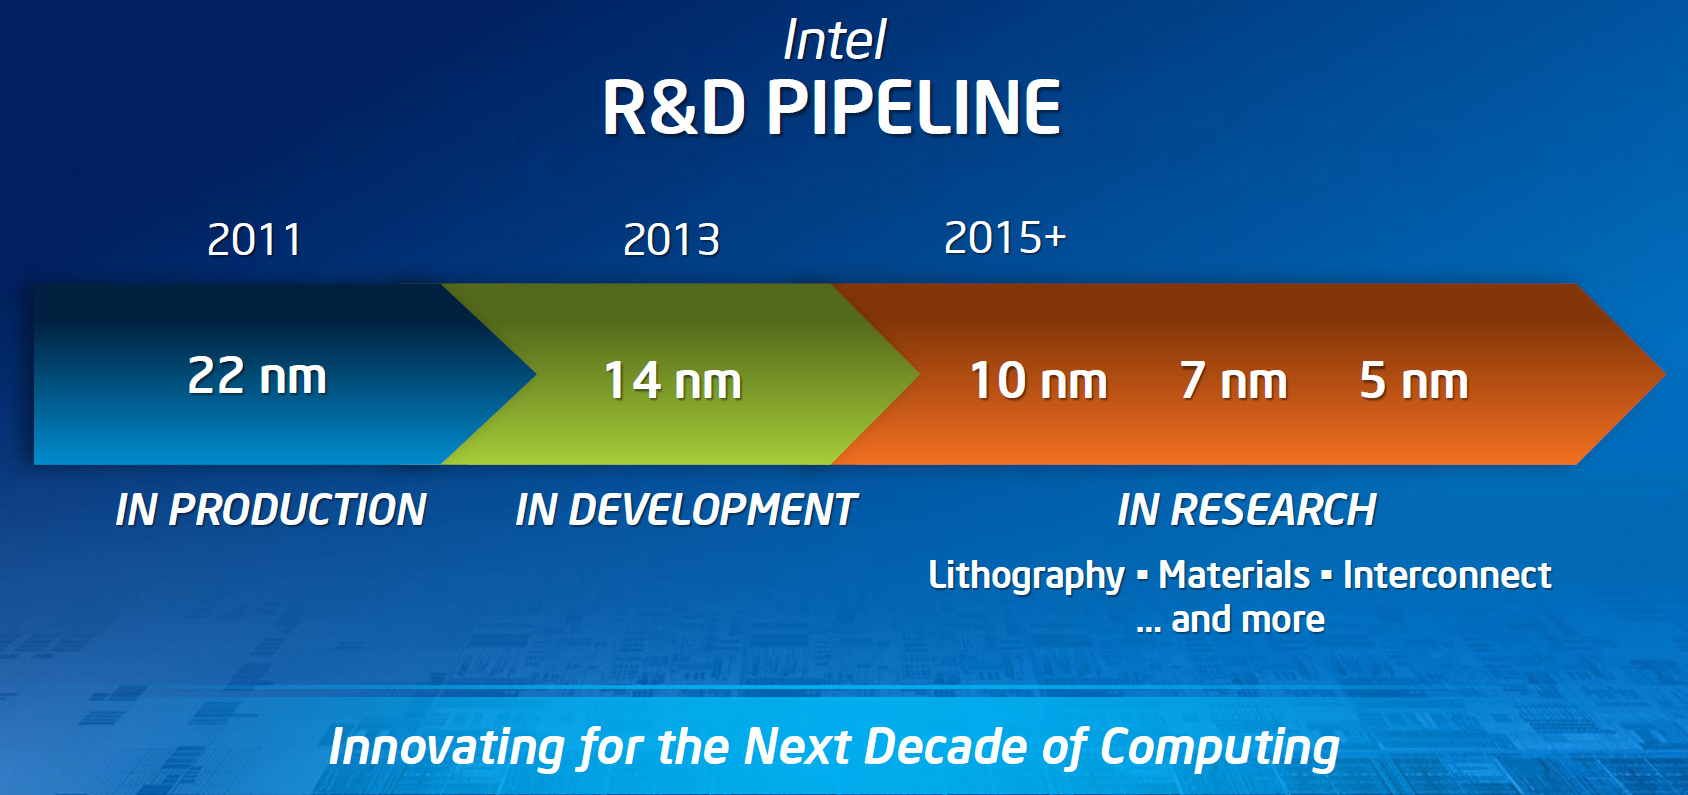 Intel 8th Generation CPU Architecture